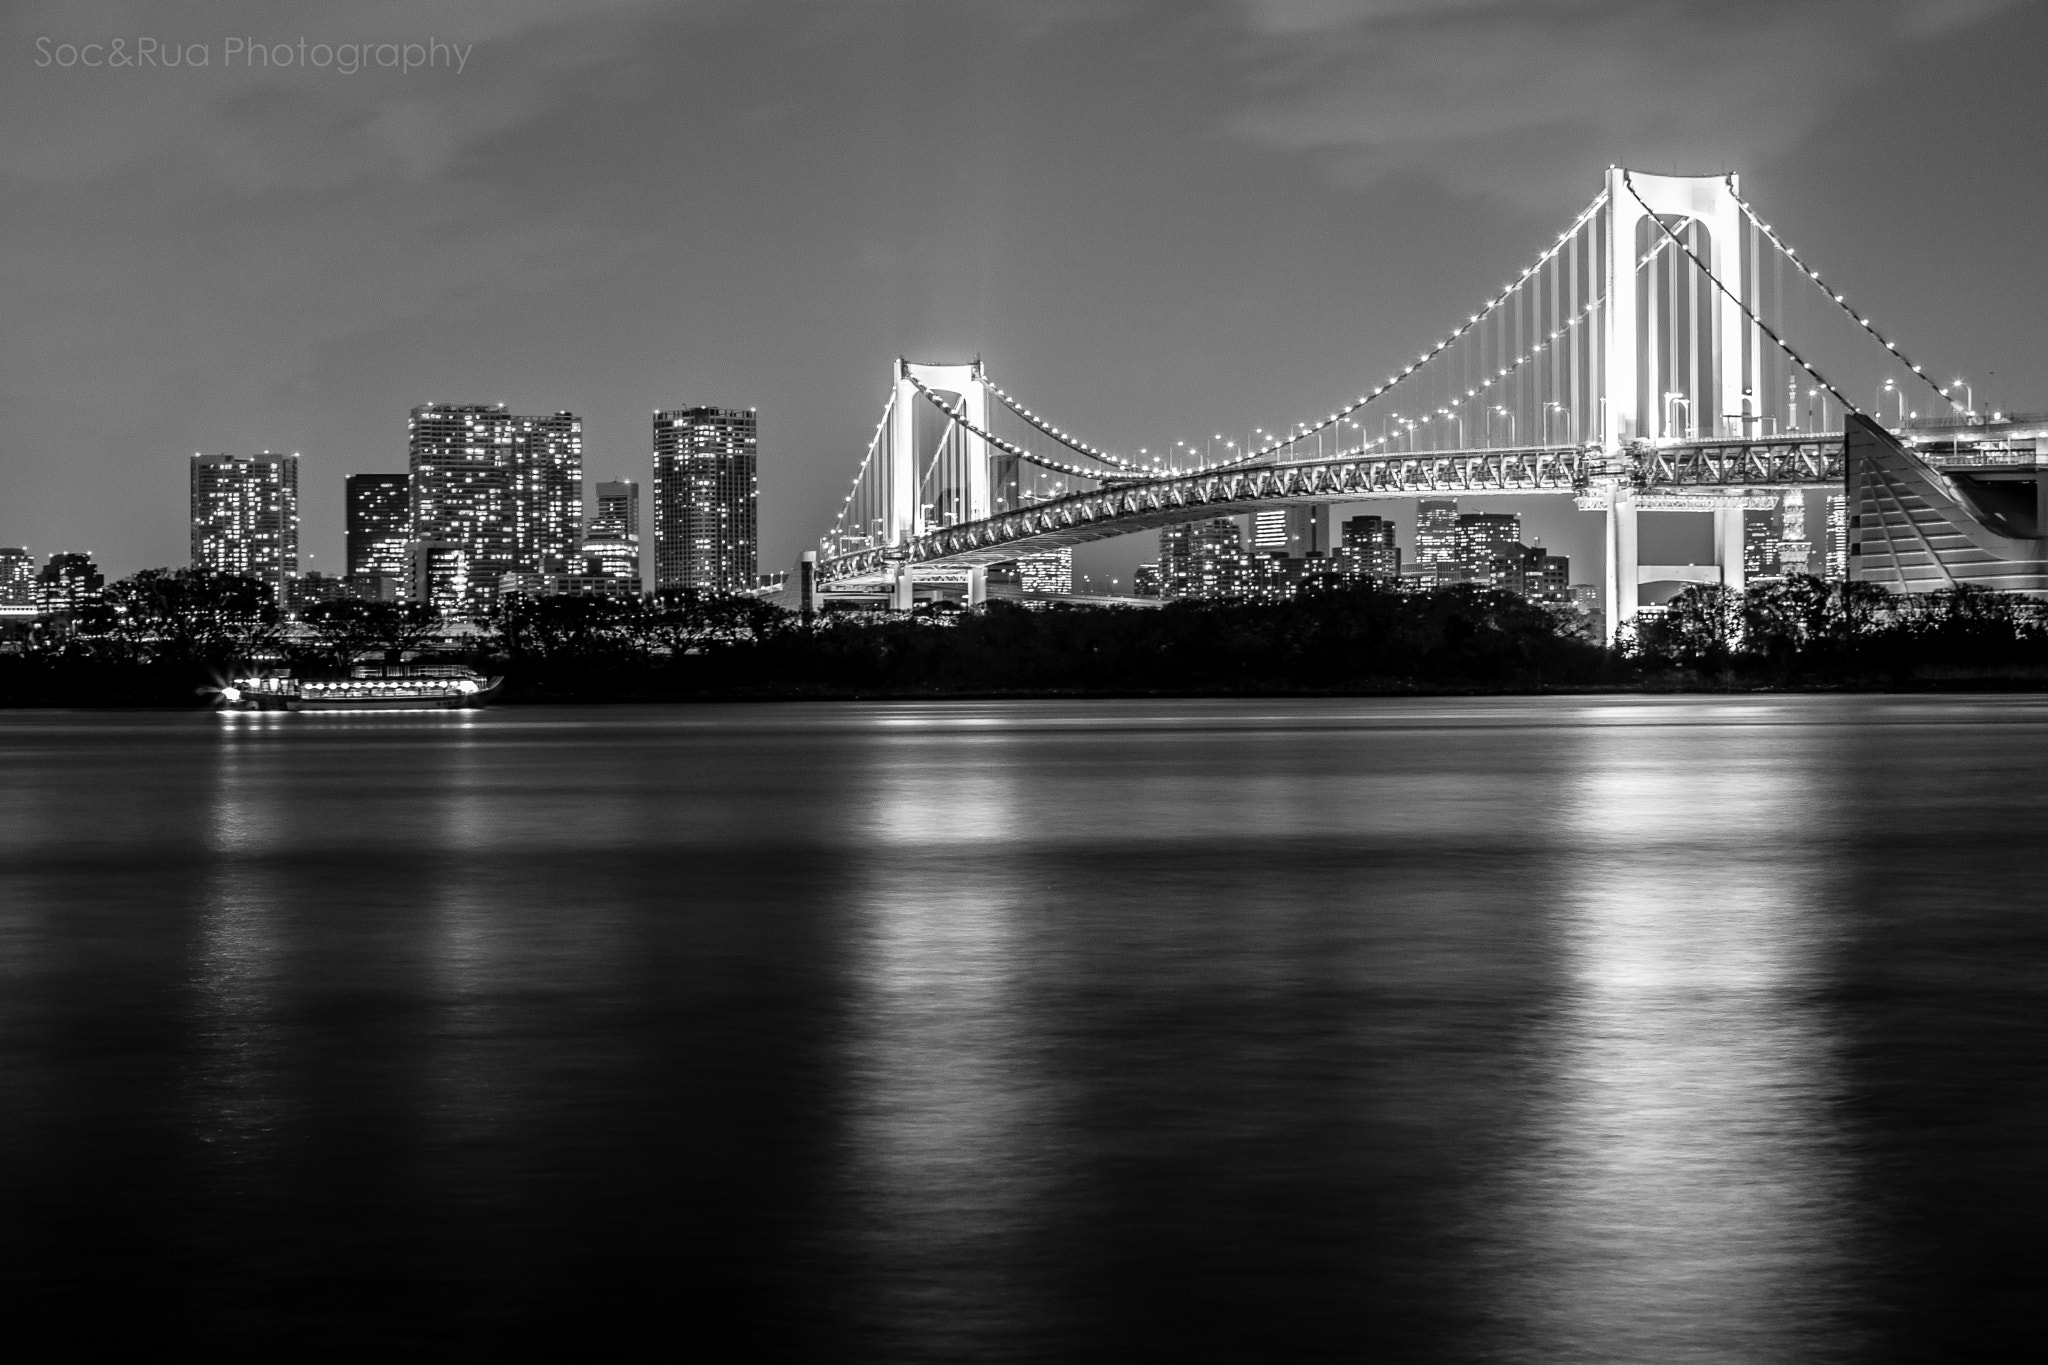 Photograph View of Odaiba by Huy Tonthat on 500px